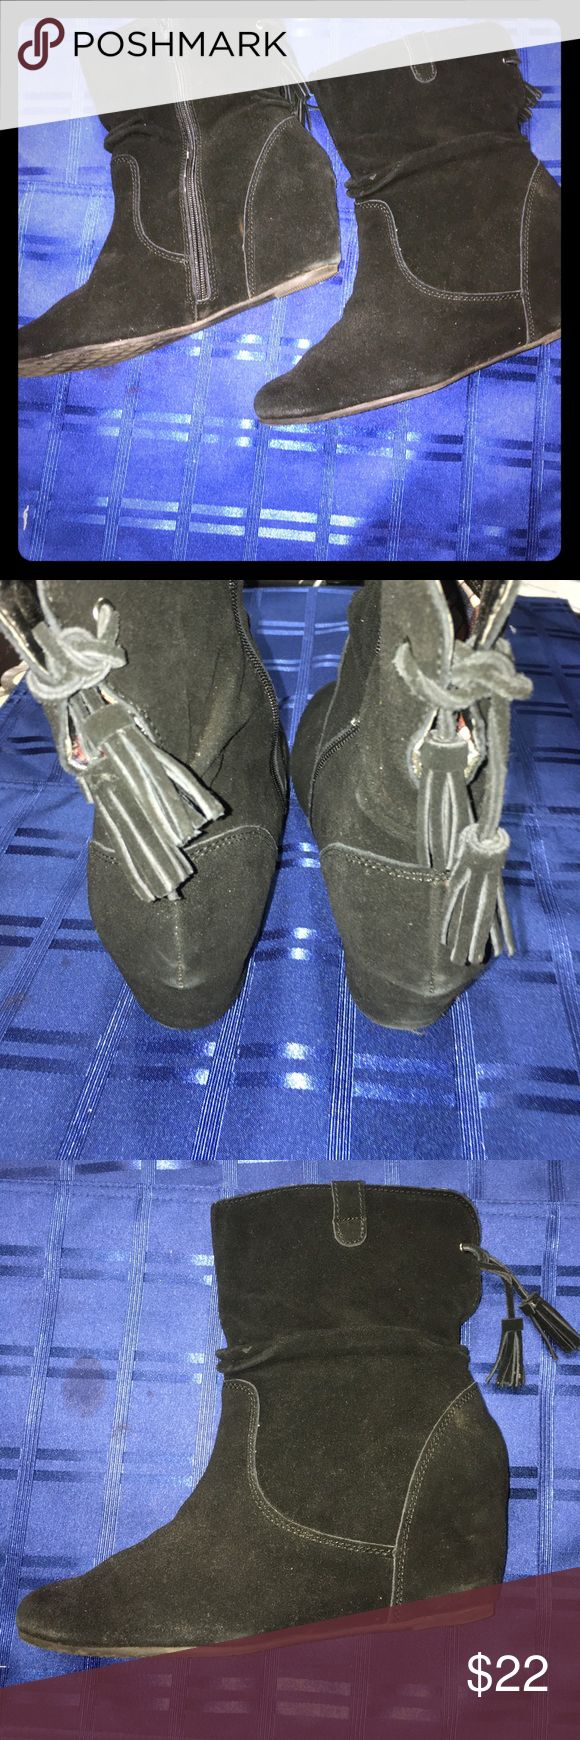 """Black suede wedge boots EUC black suede wedge boots. Zipper closure. Tassel detail. Goes apps 3"""" above the ankle. Size is 10 White Mountaineering Shoes Ankle Boots & Booties"""